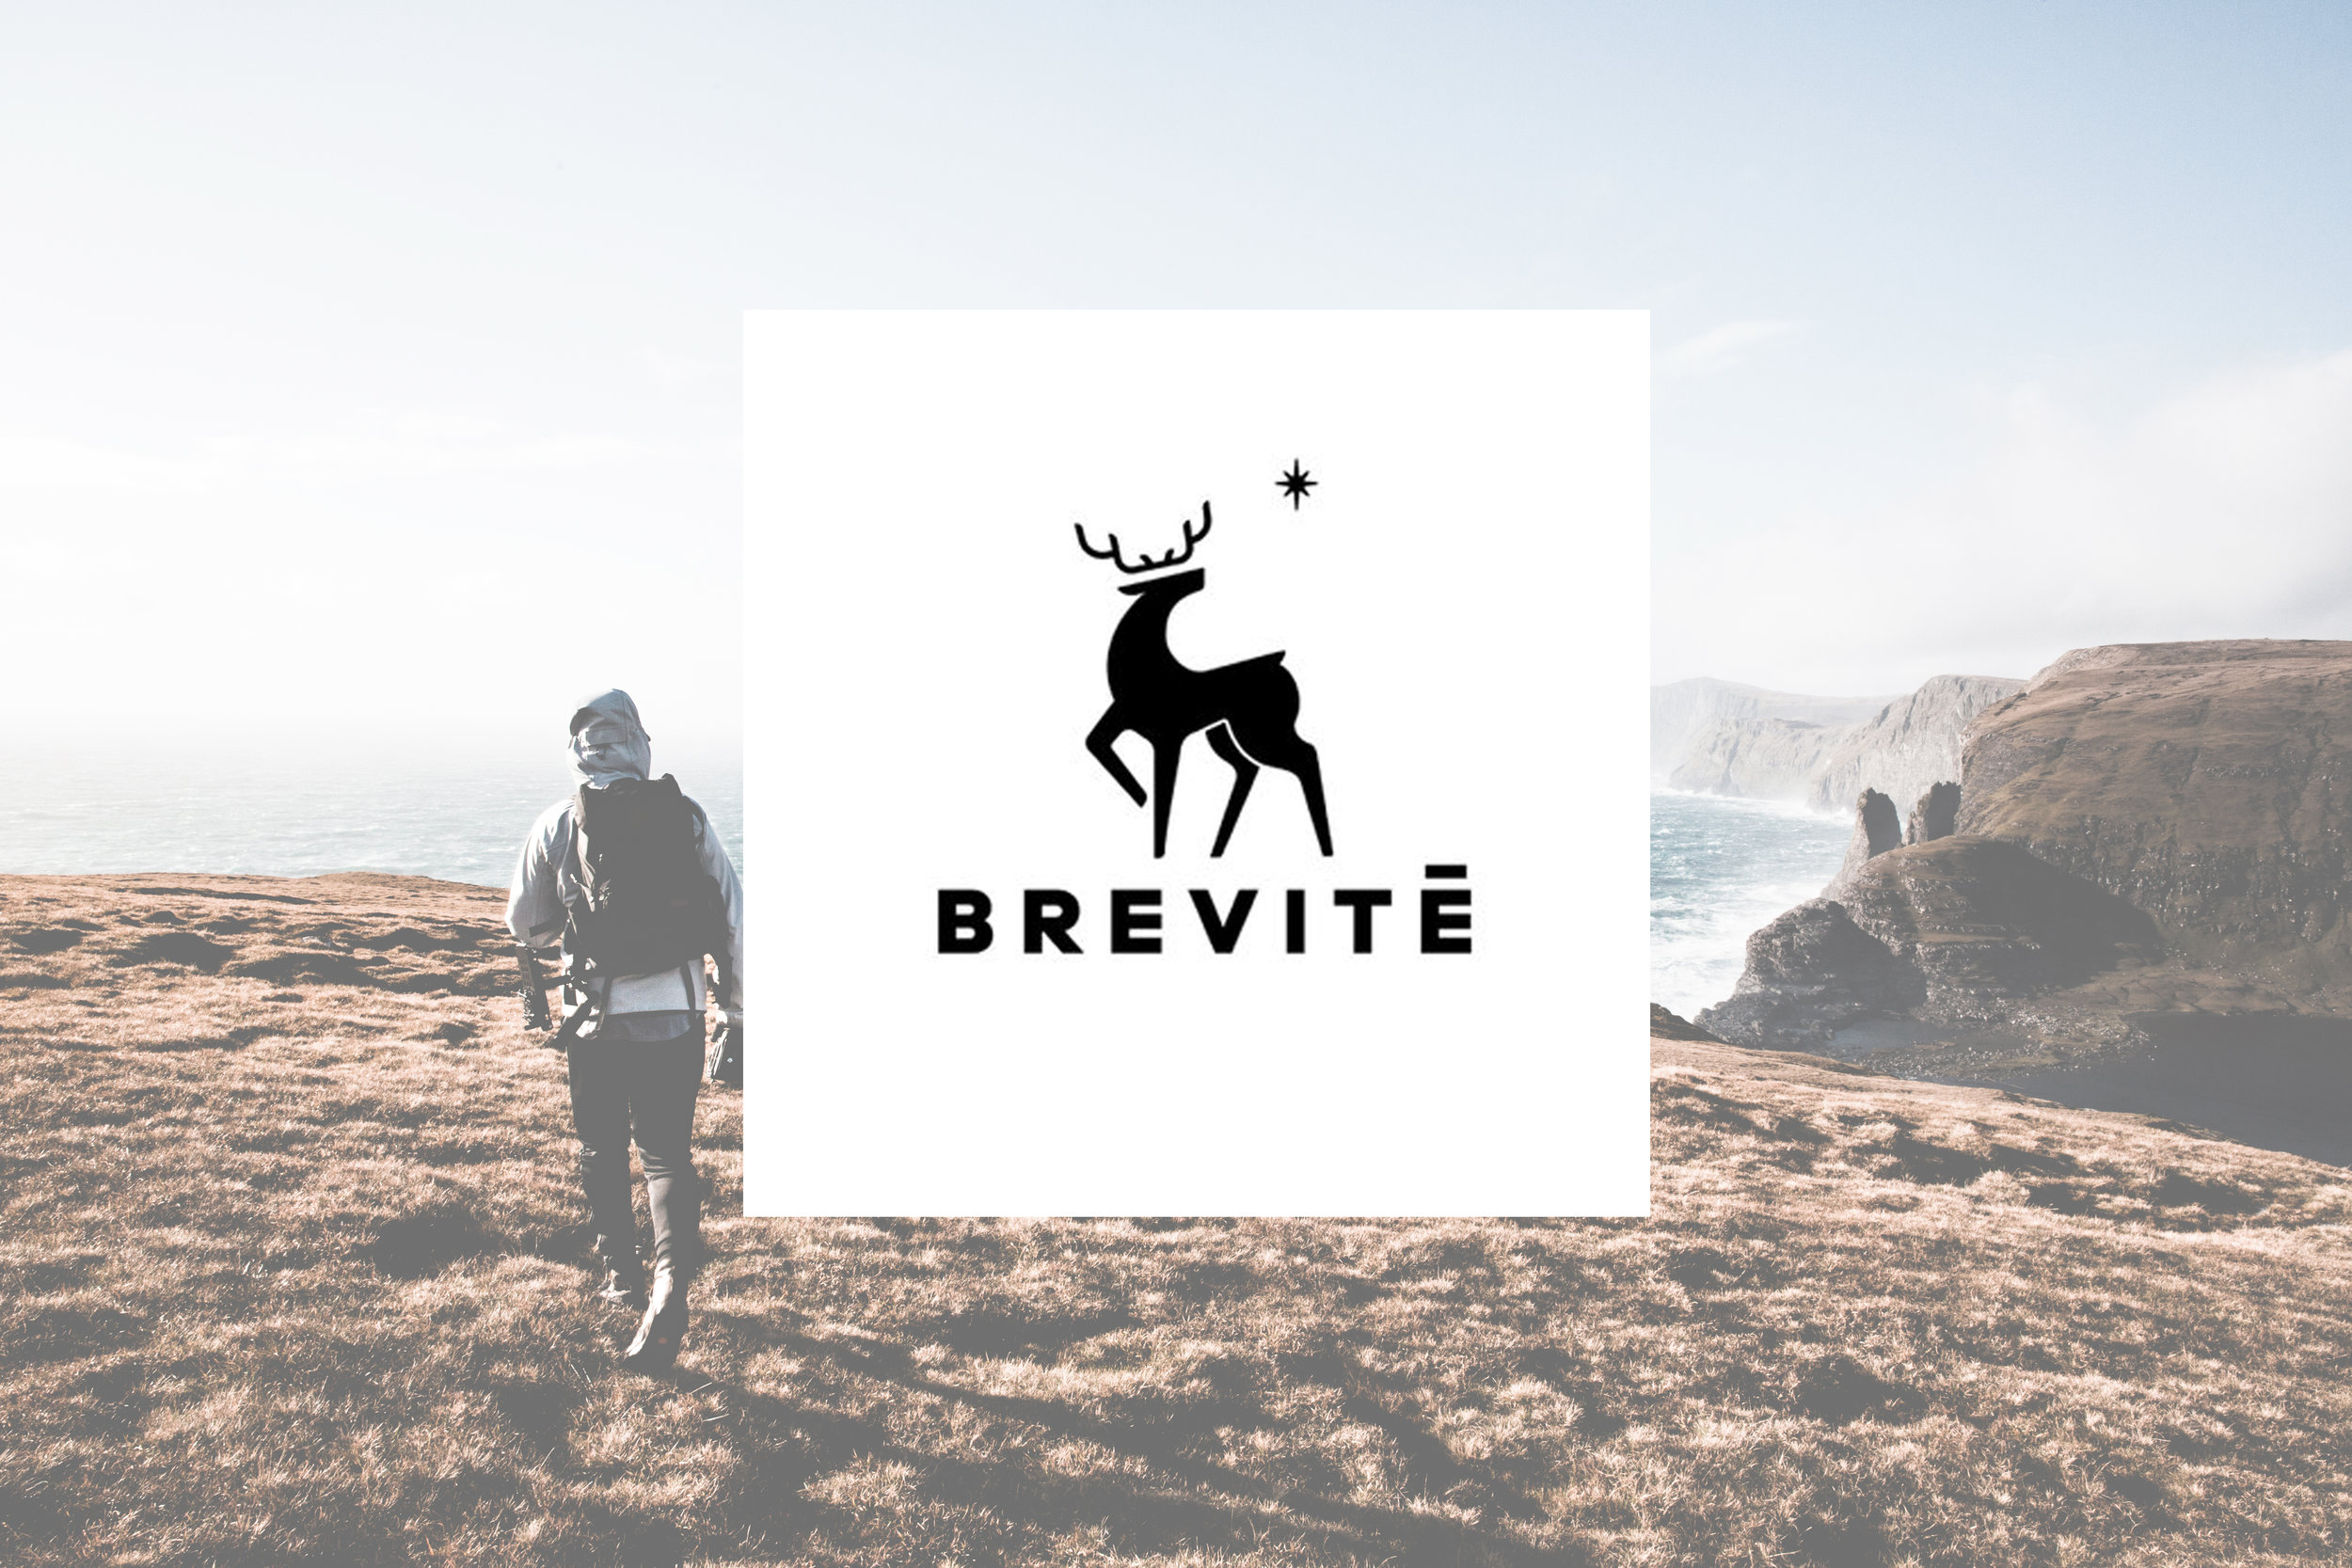 Brevité - Product deployment content for company's website